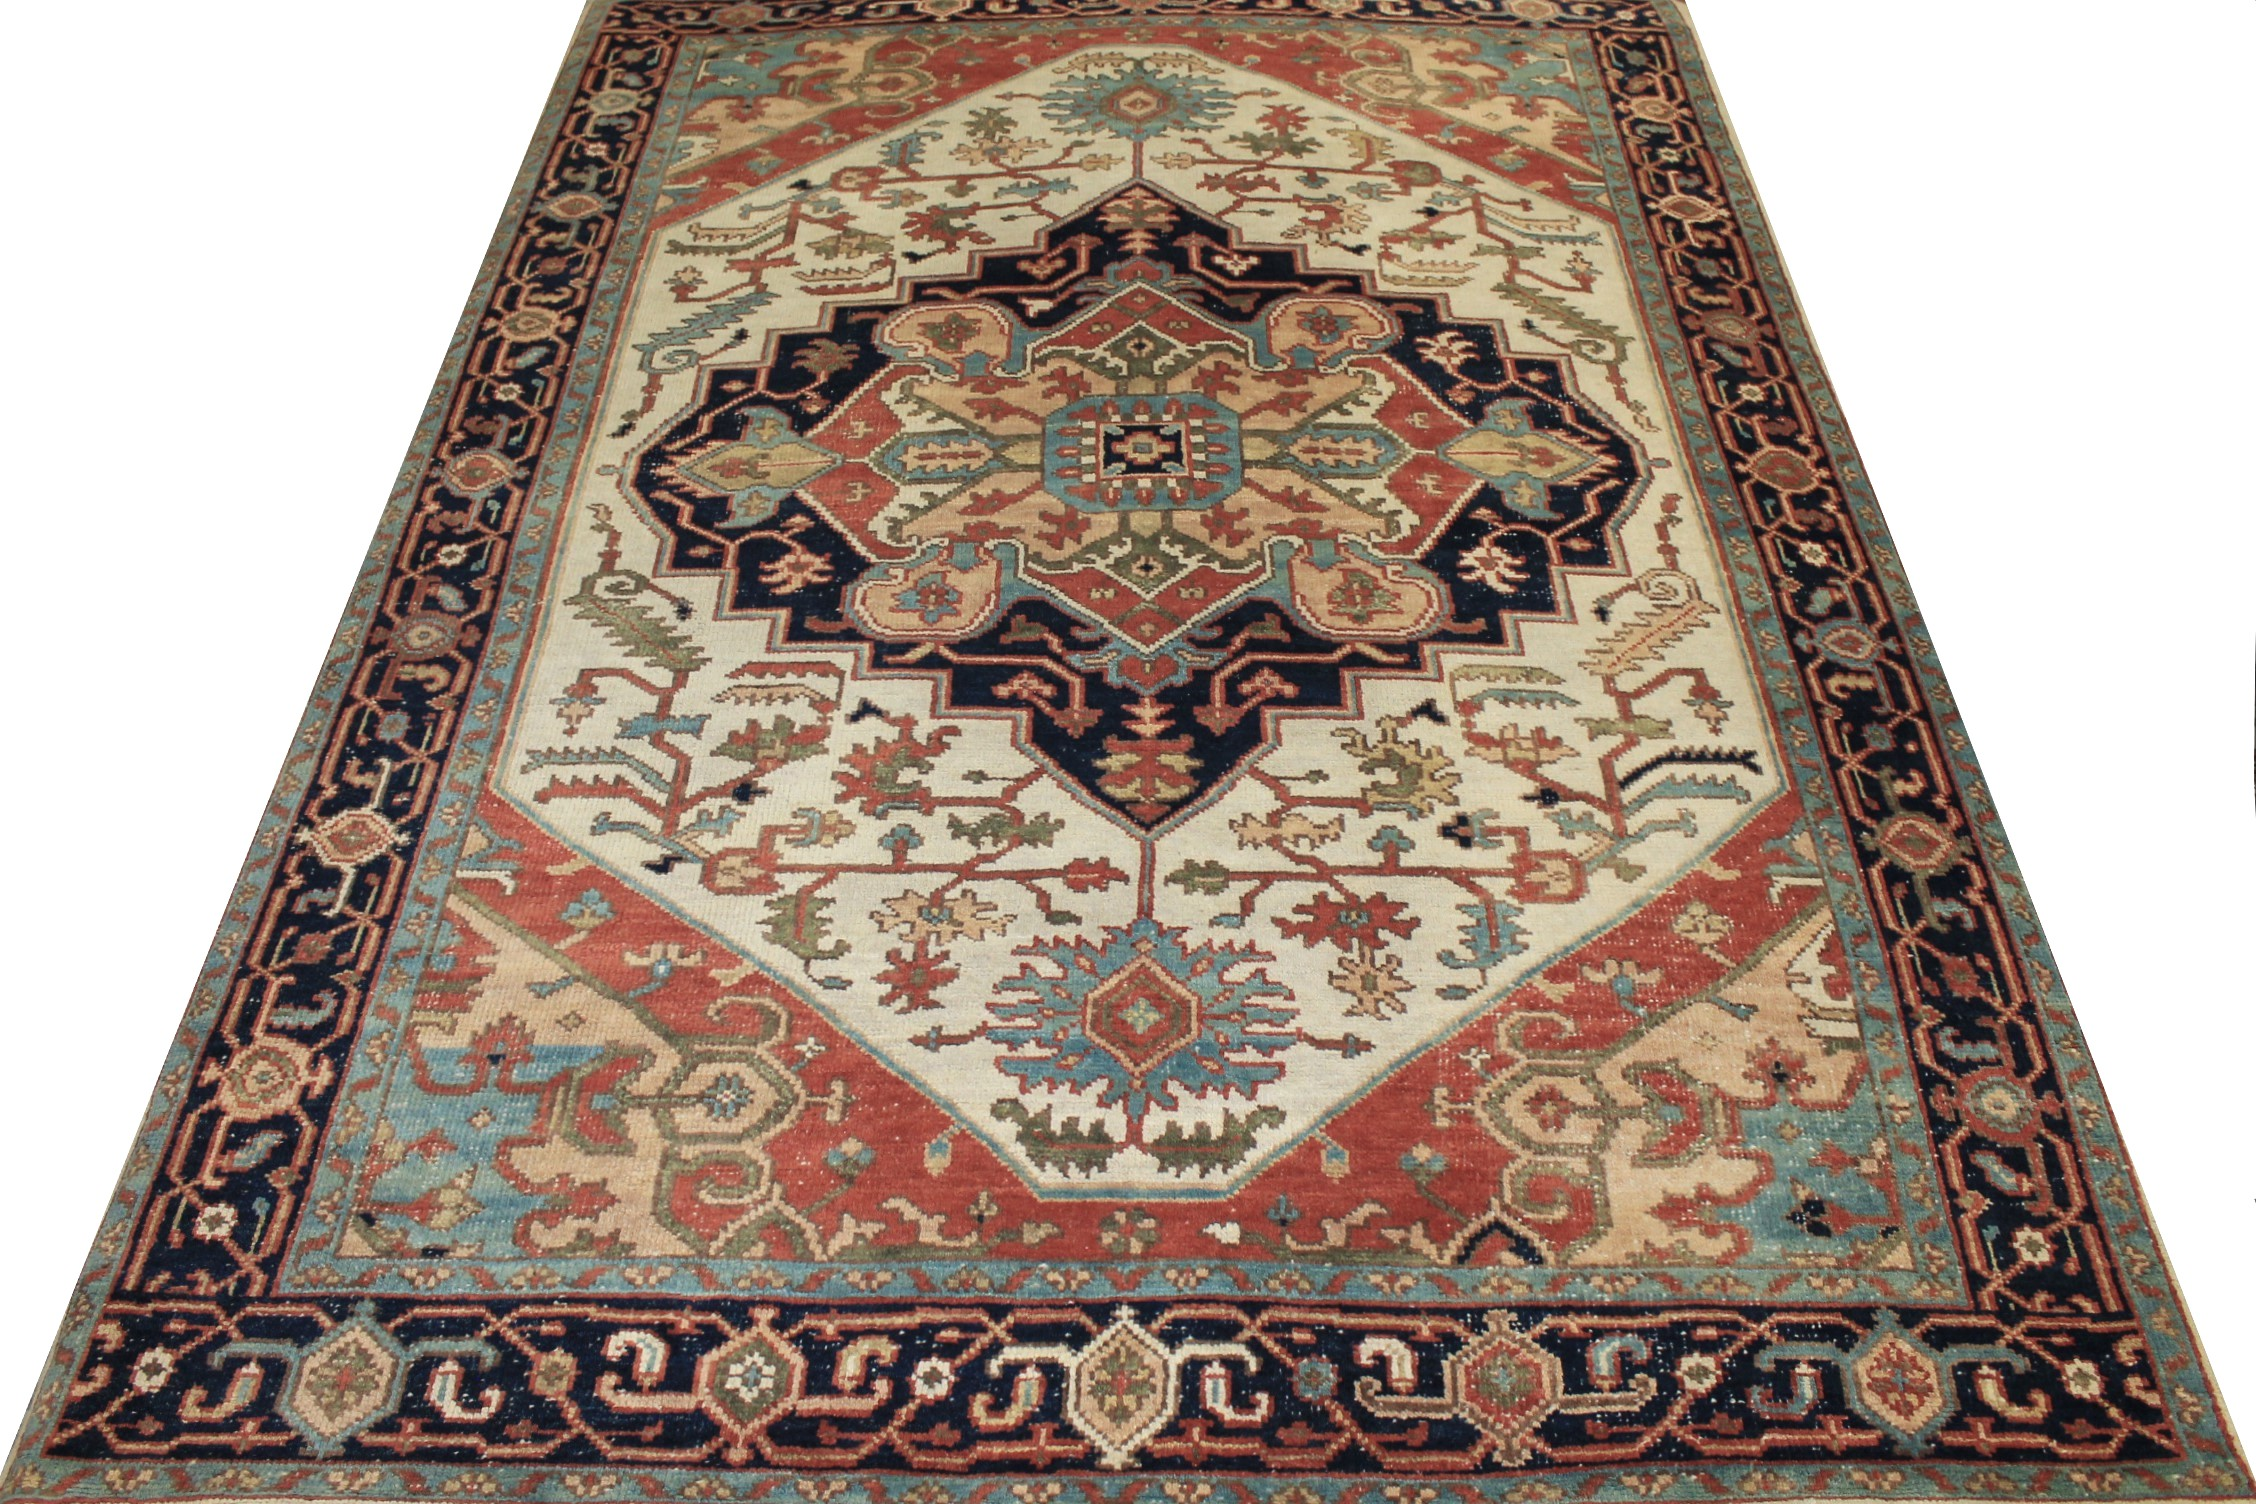 9x12 Oushak Hand Knotted Wool Area Rug - MR024307